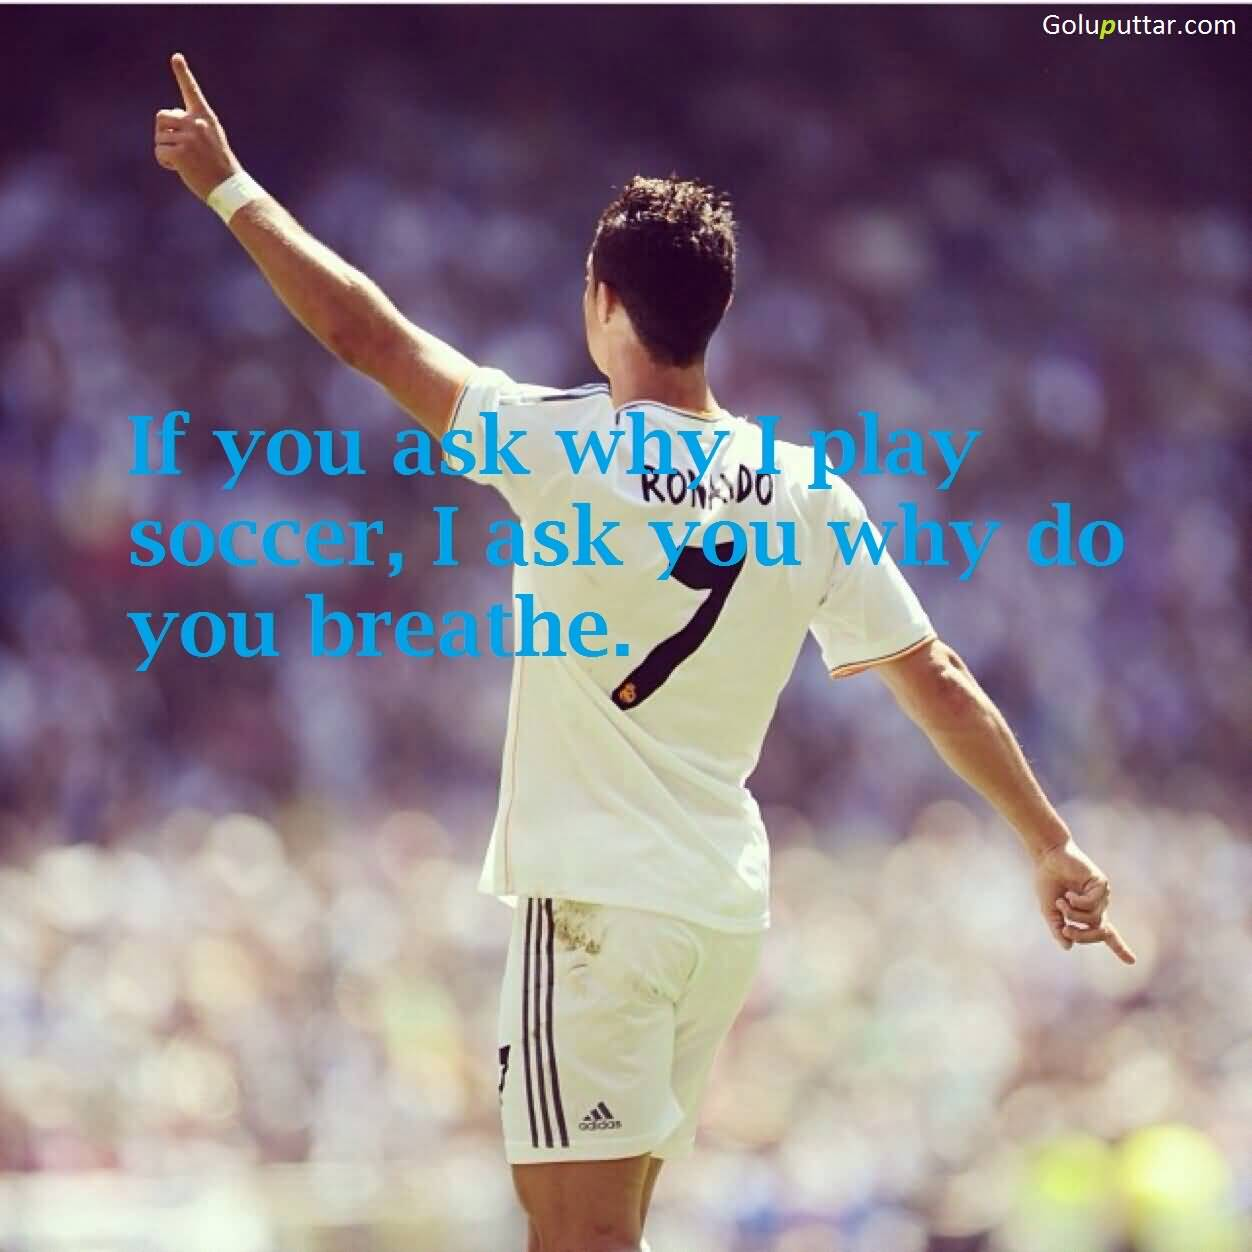 60+ Famous Quotes And Sayings About Soccer